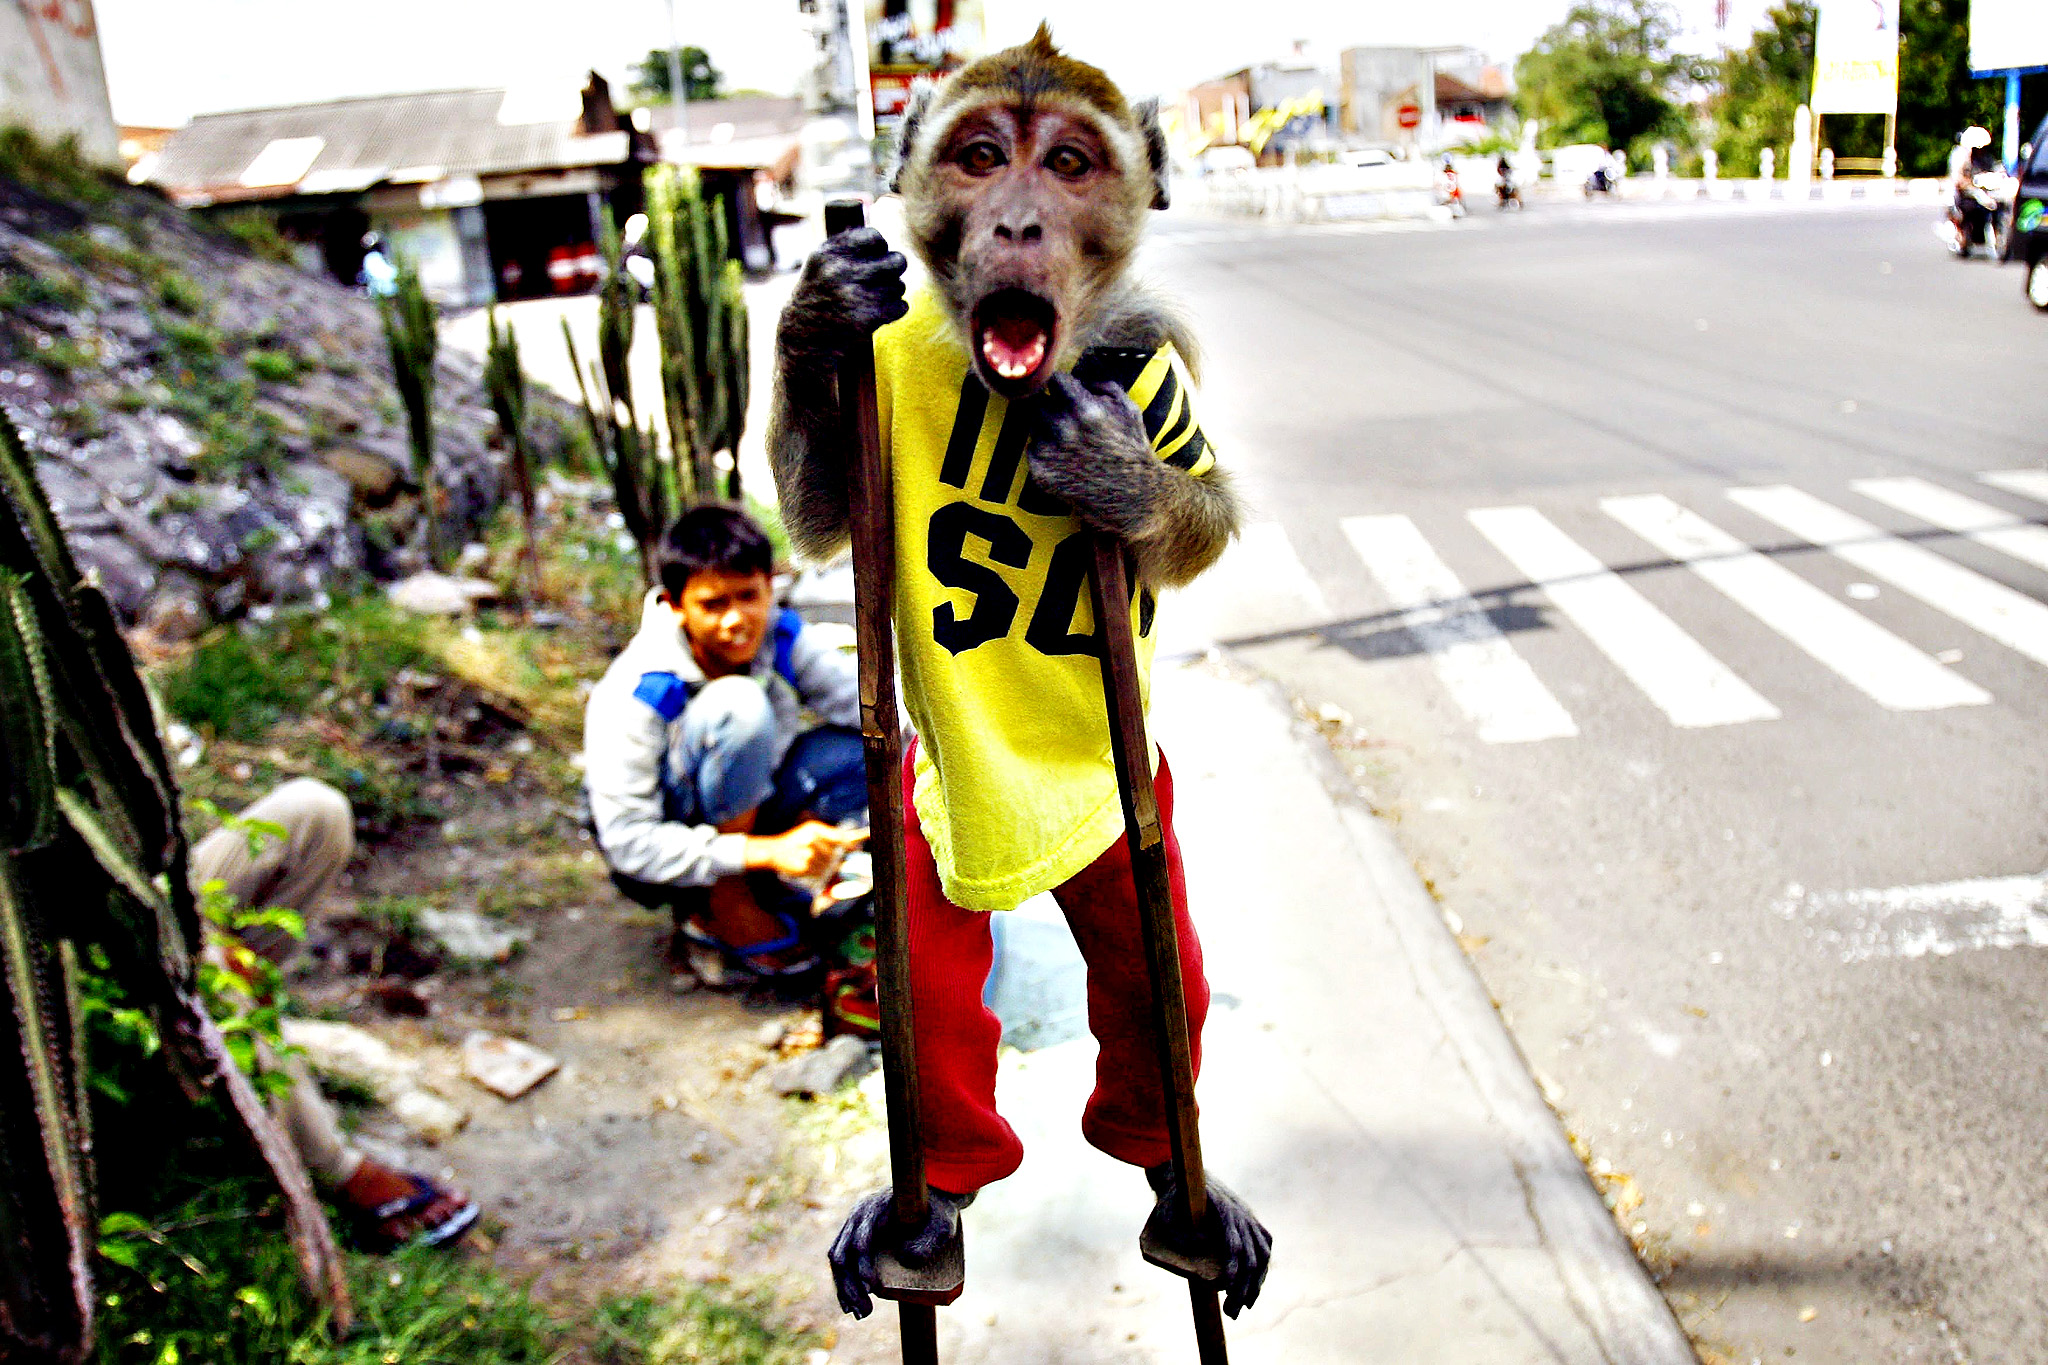 A street monkey performs on a sidewalk in Solo, Central Java, Indonesia on Monday. Jakarta Governor Joko Widodo is continued with the plan to stop masked monkey performances, locally known as 'topeng monyet', by year 2014 to improve public order and preventing illness carried by monkeys. The city's administration planned to buy the monkeys used in street performances and keeping them in a zoo.